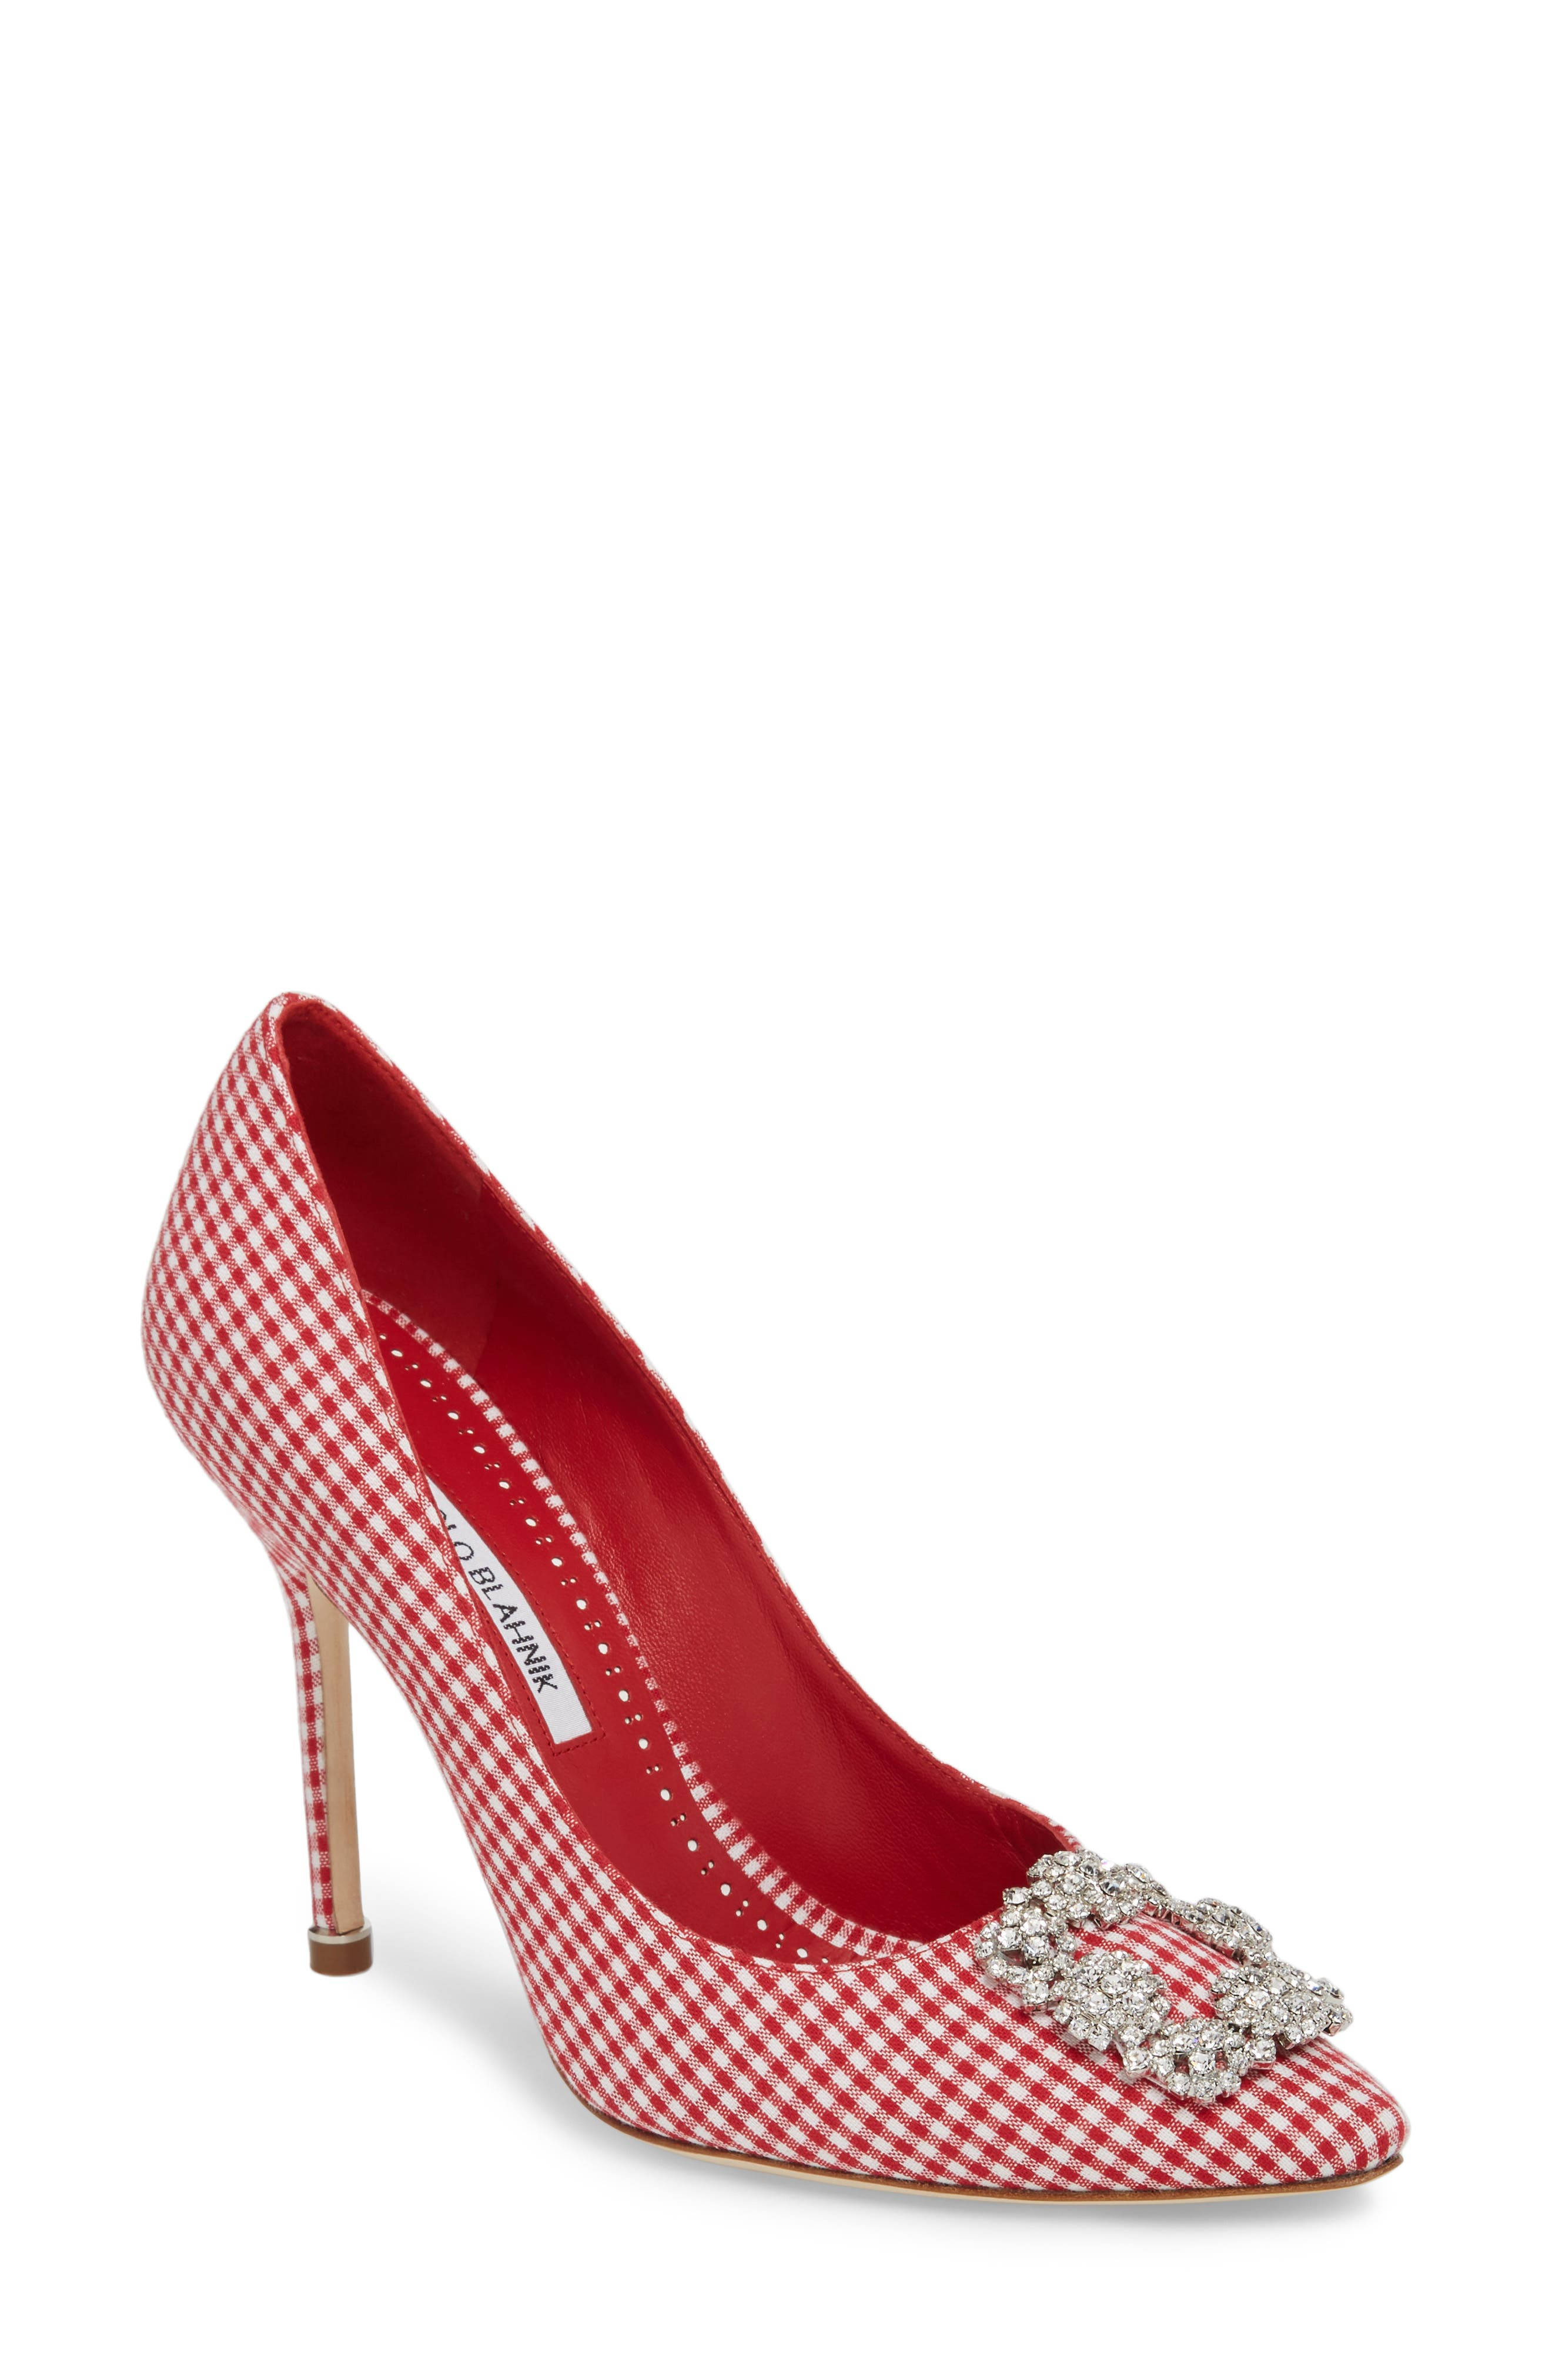 'Hangisi' Ornamented Pump,                         Main,                         color, Red Gingham